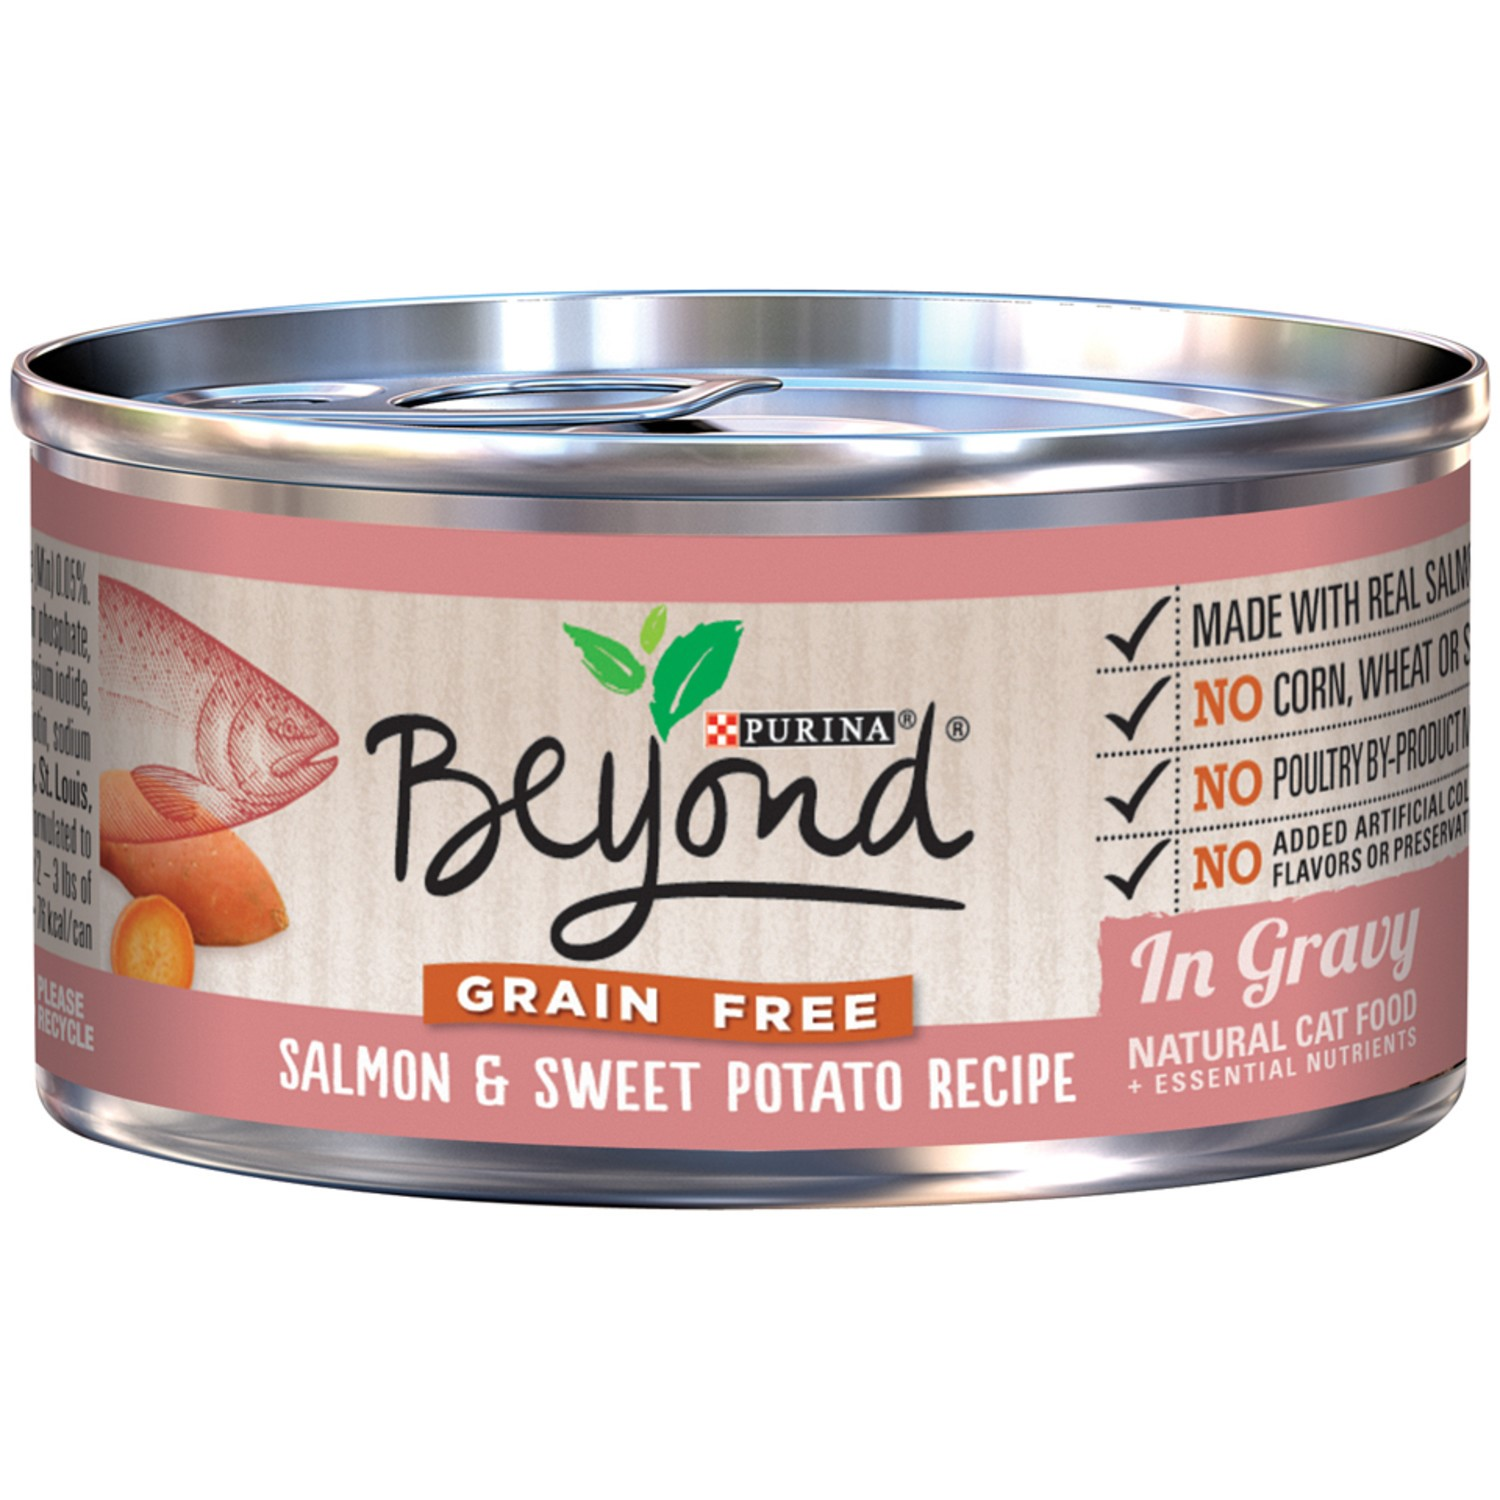 Purina Beyond Grain Free Salmon & Sweet Potato Recipe in Gravy Wet Cat Food, 3 Oz